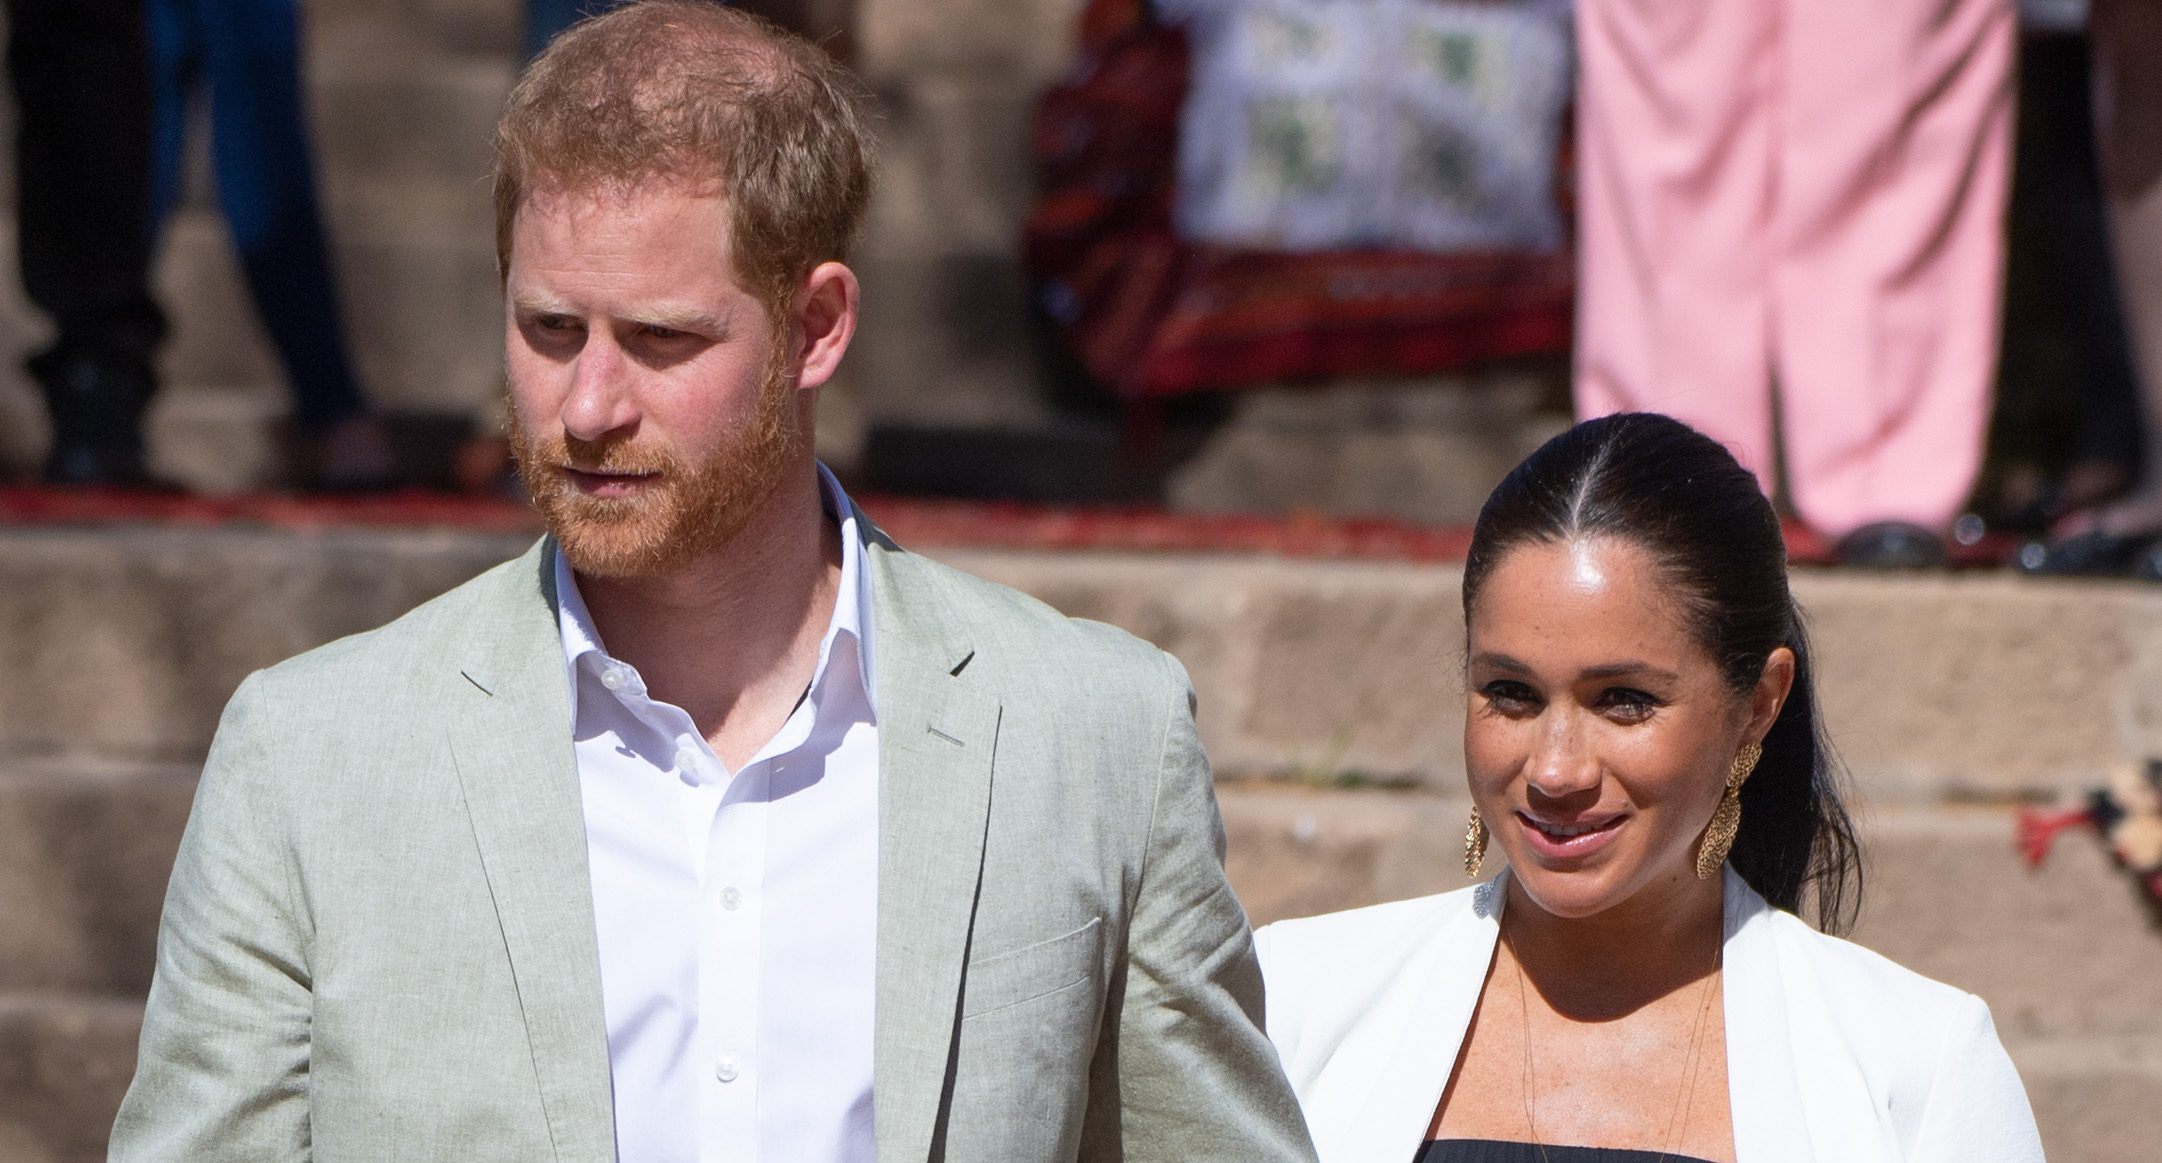 Prince Harry, Meghan Markle ban uniformed nannies for Prince Archie